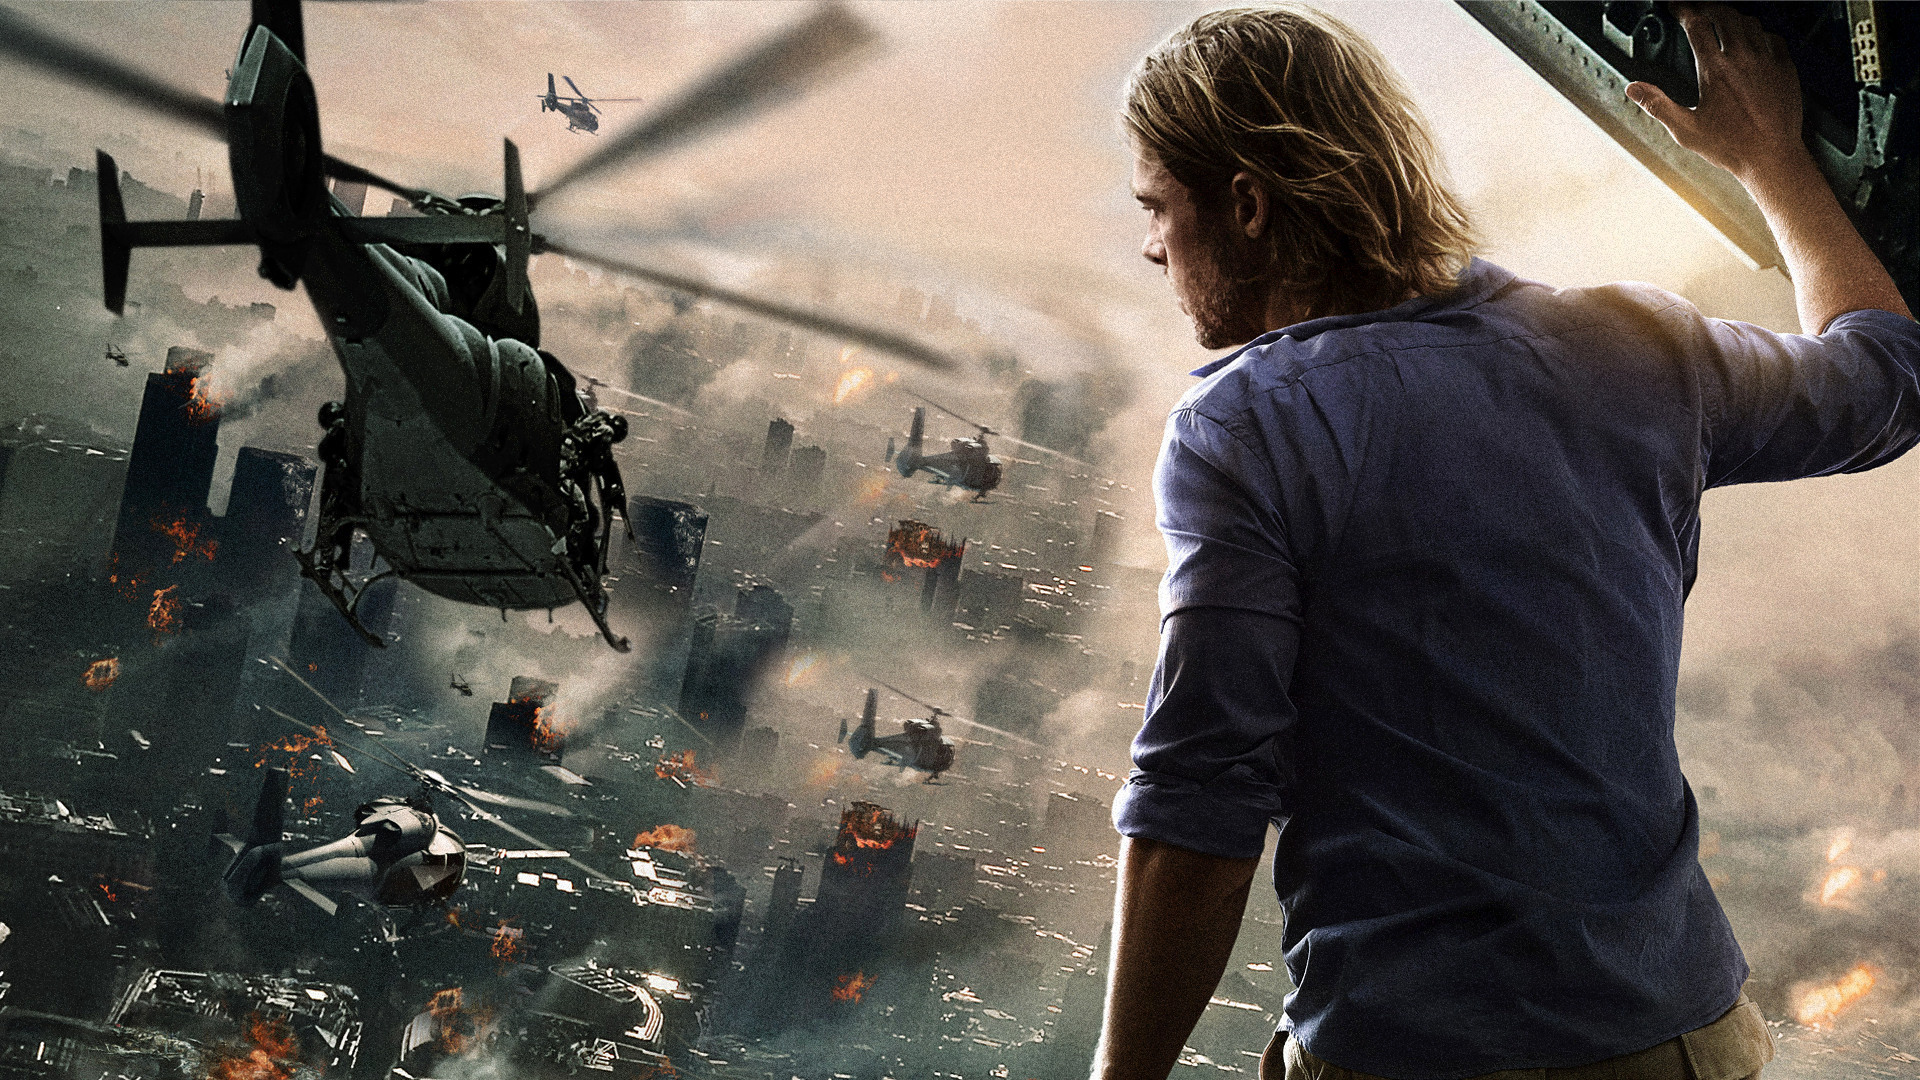 Free world war z audiobook download online streaming mp3.